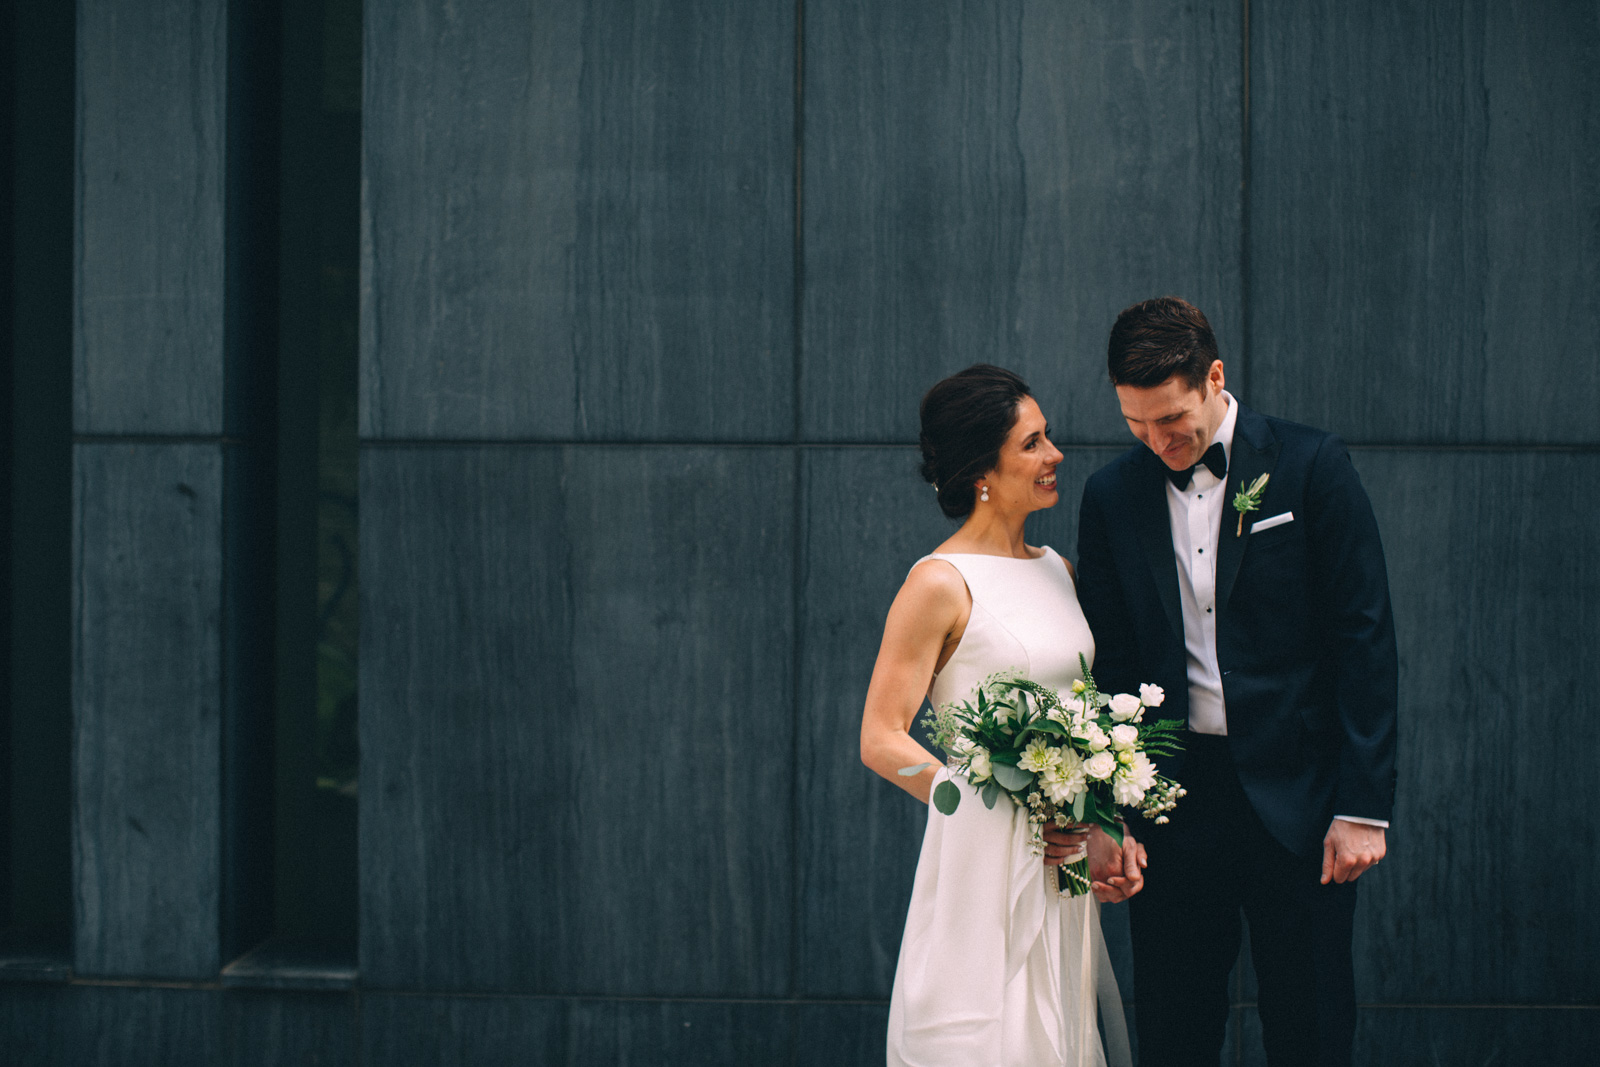 Malaparte-wedding-photography-Toronto-by-Sam-Wong-of-Visual-Cravings_33